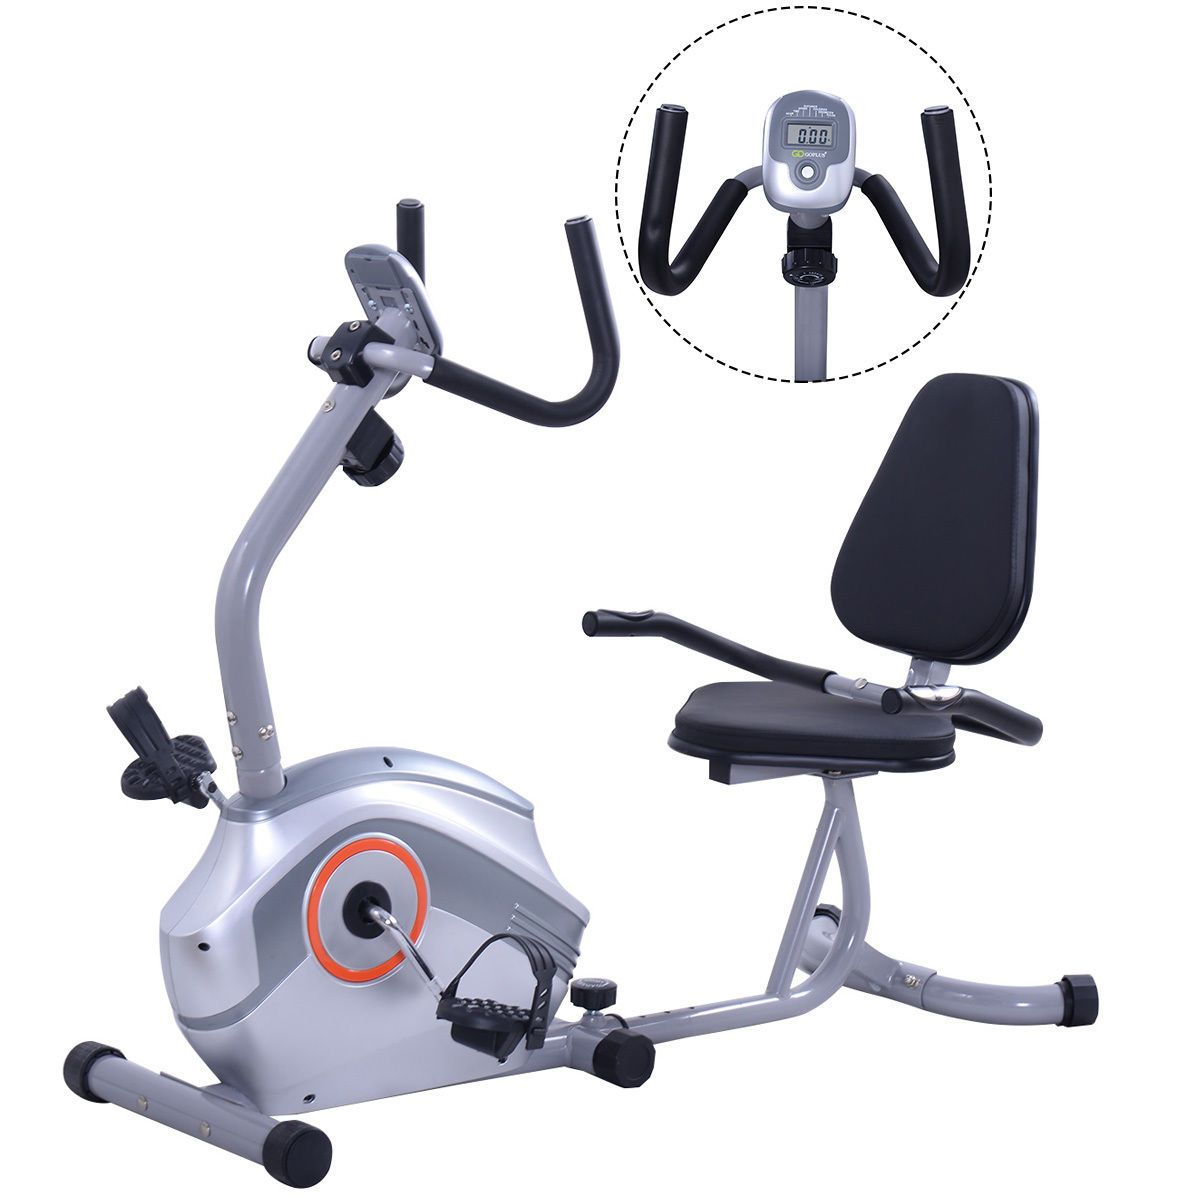 Recumbent Exercise Bike Stationary Bicycle Cardio Workout Fitness Home Gym New Recumbent Bike Workout Biking Workout Exercise Bike For Sale